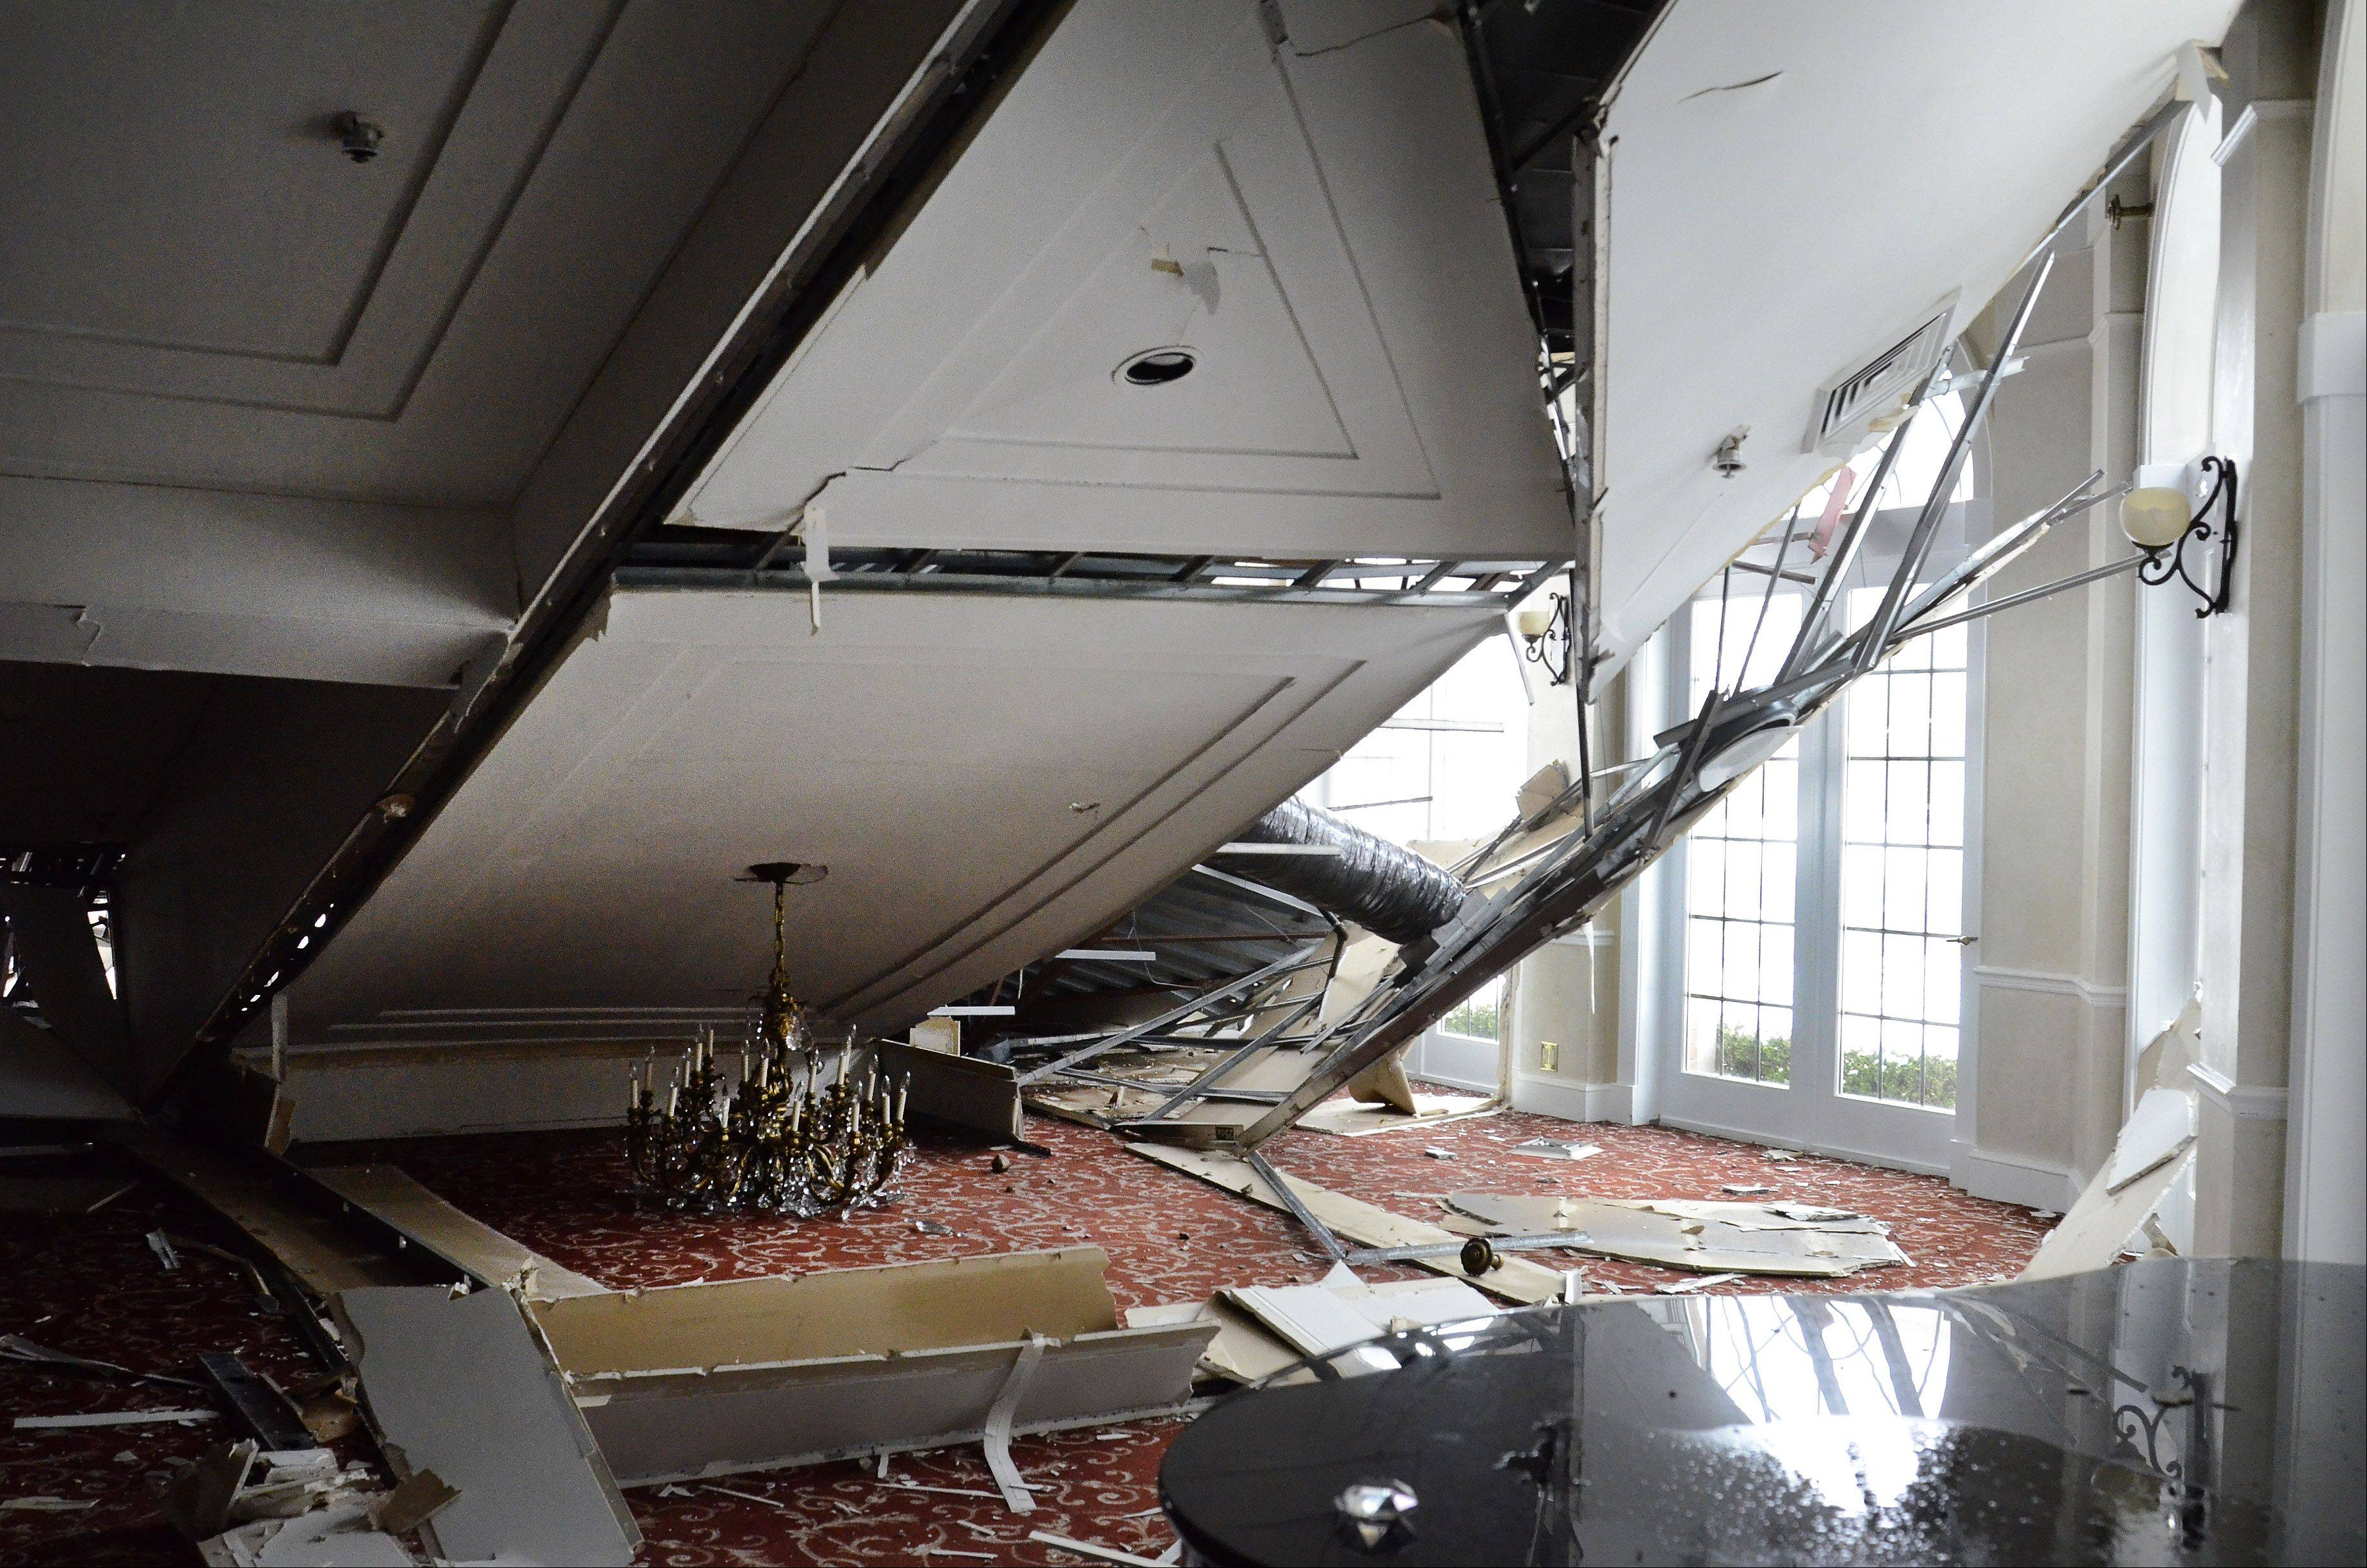 Authorities suspect a buildup of snow from Tuesday�s winter storm caused the roof to collapse over a portion of Cafe la Cave in Des Plaines. The collapse destroyed one ballroom and damaged other portions of the banquet hall and restaurant.